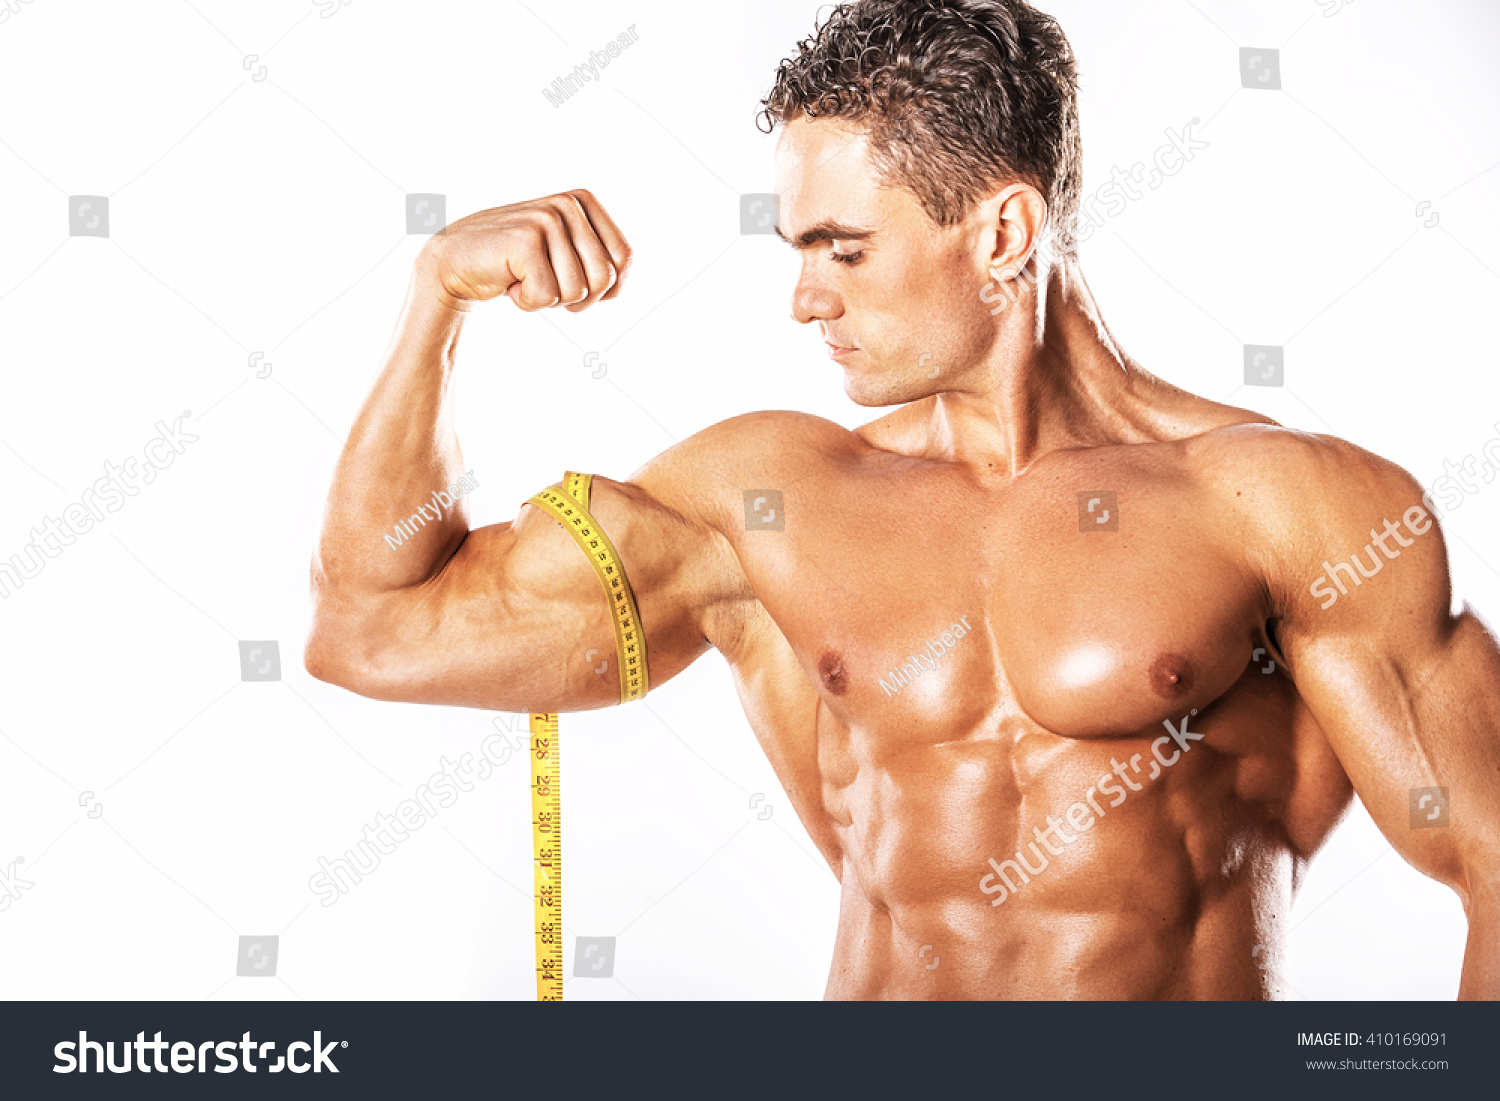 Strong Athletic Man Showing Muscular Body Stock Photo (Safe to Use ...